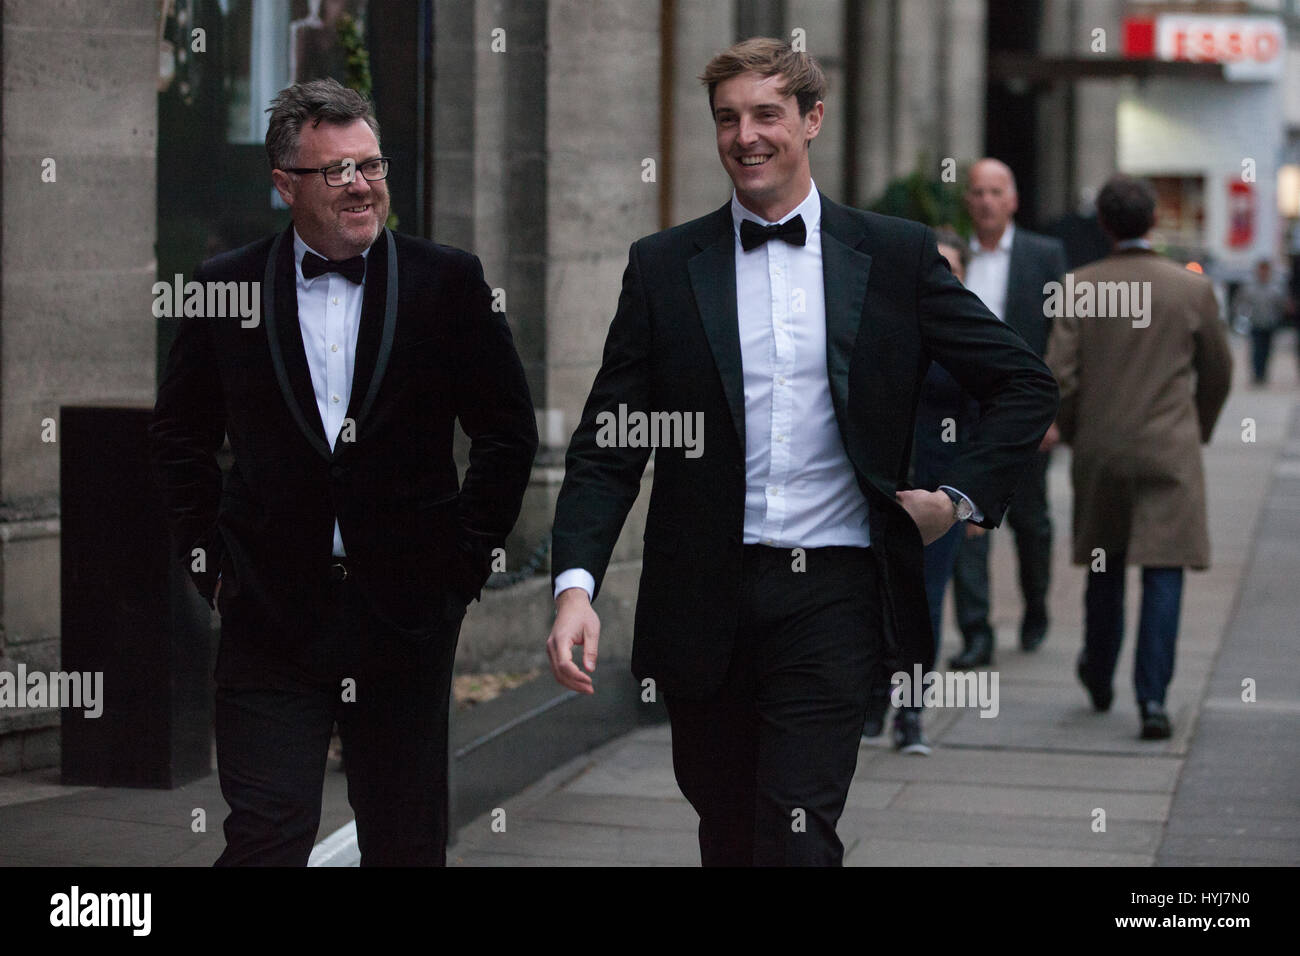 London, UK. 4th April, 2017. Guests arrive for the Property Developers' Awards, an expensive black tie event, - Stock Image